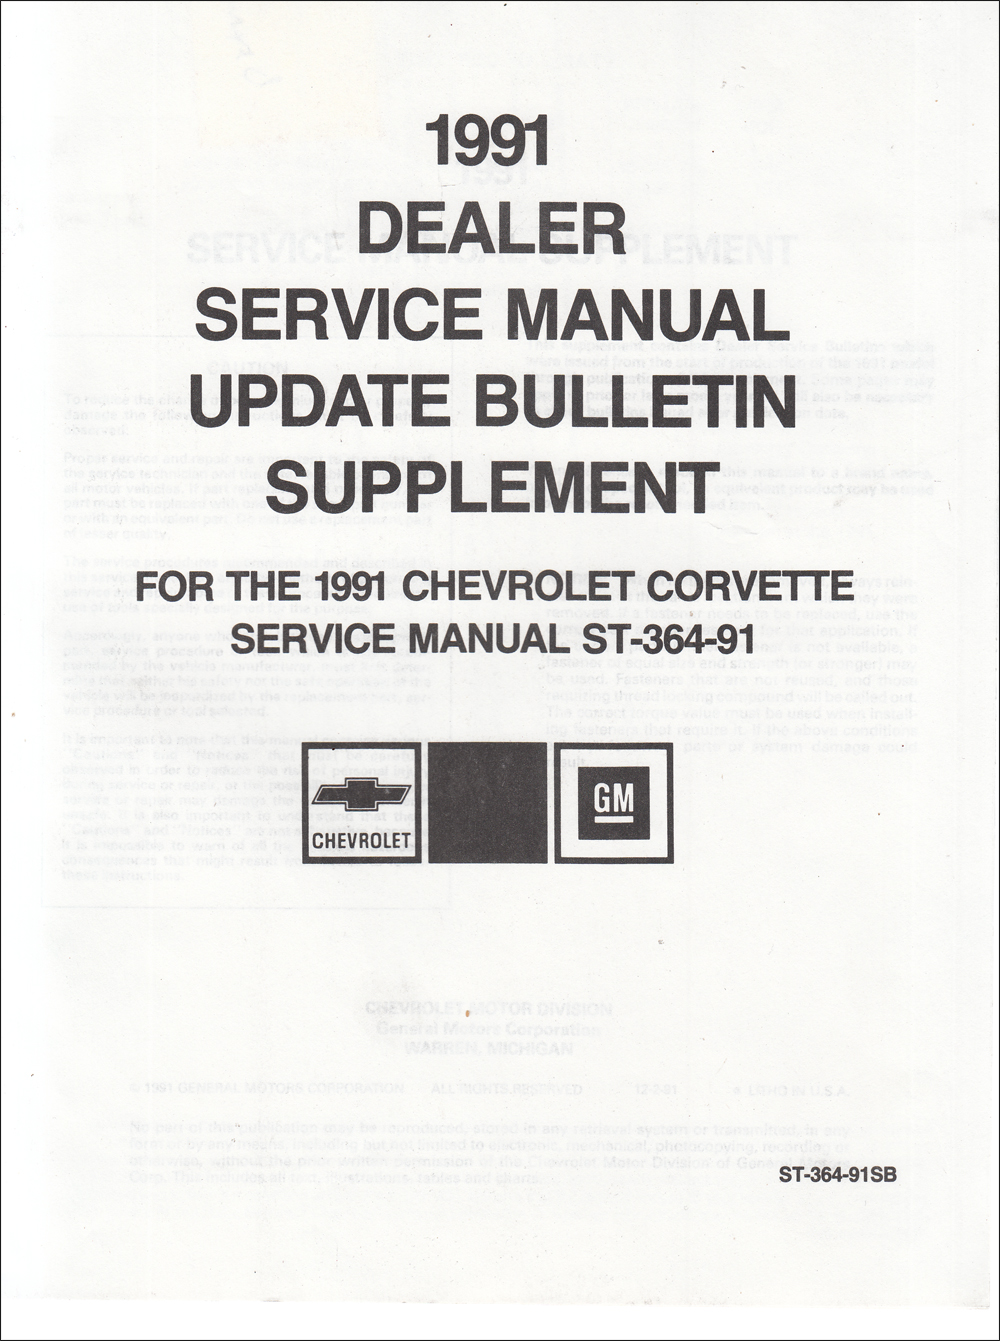 1991 Chevrolet Corvette Shop Manual Manual Service Bulletin Supplement Update